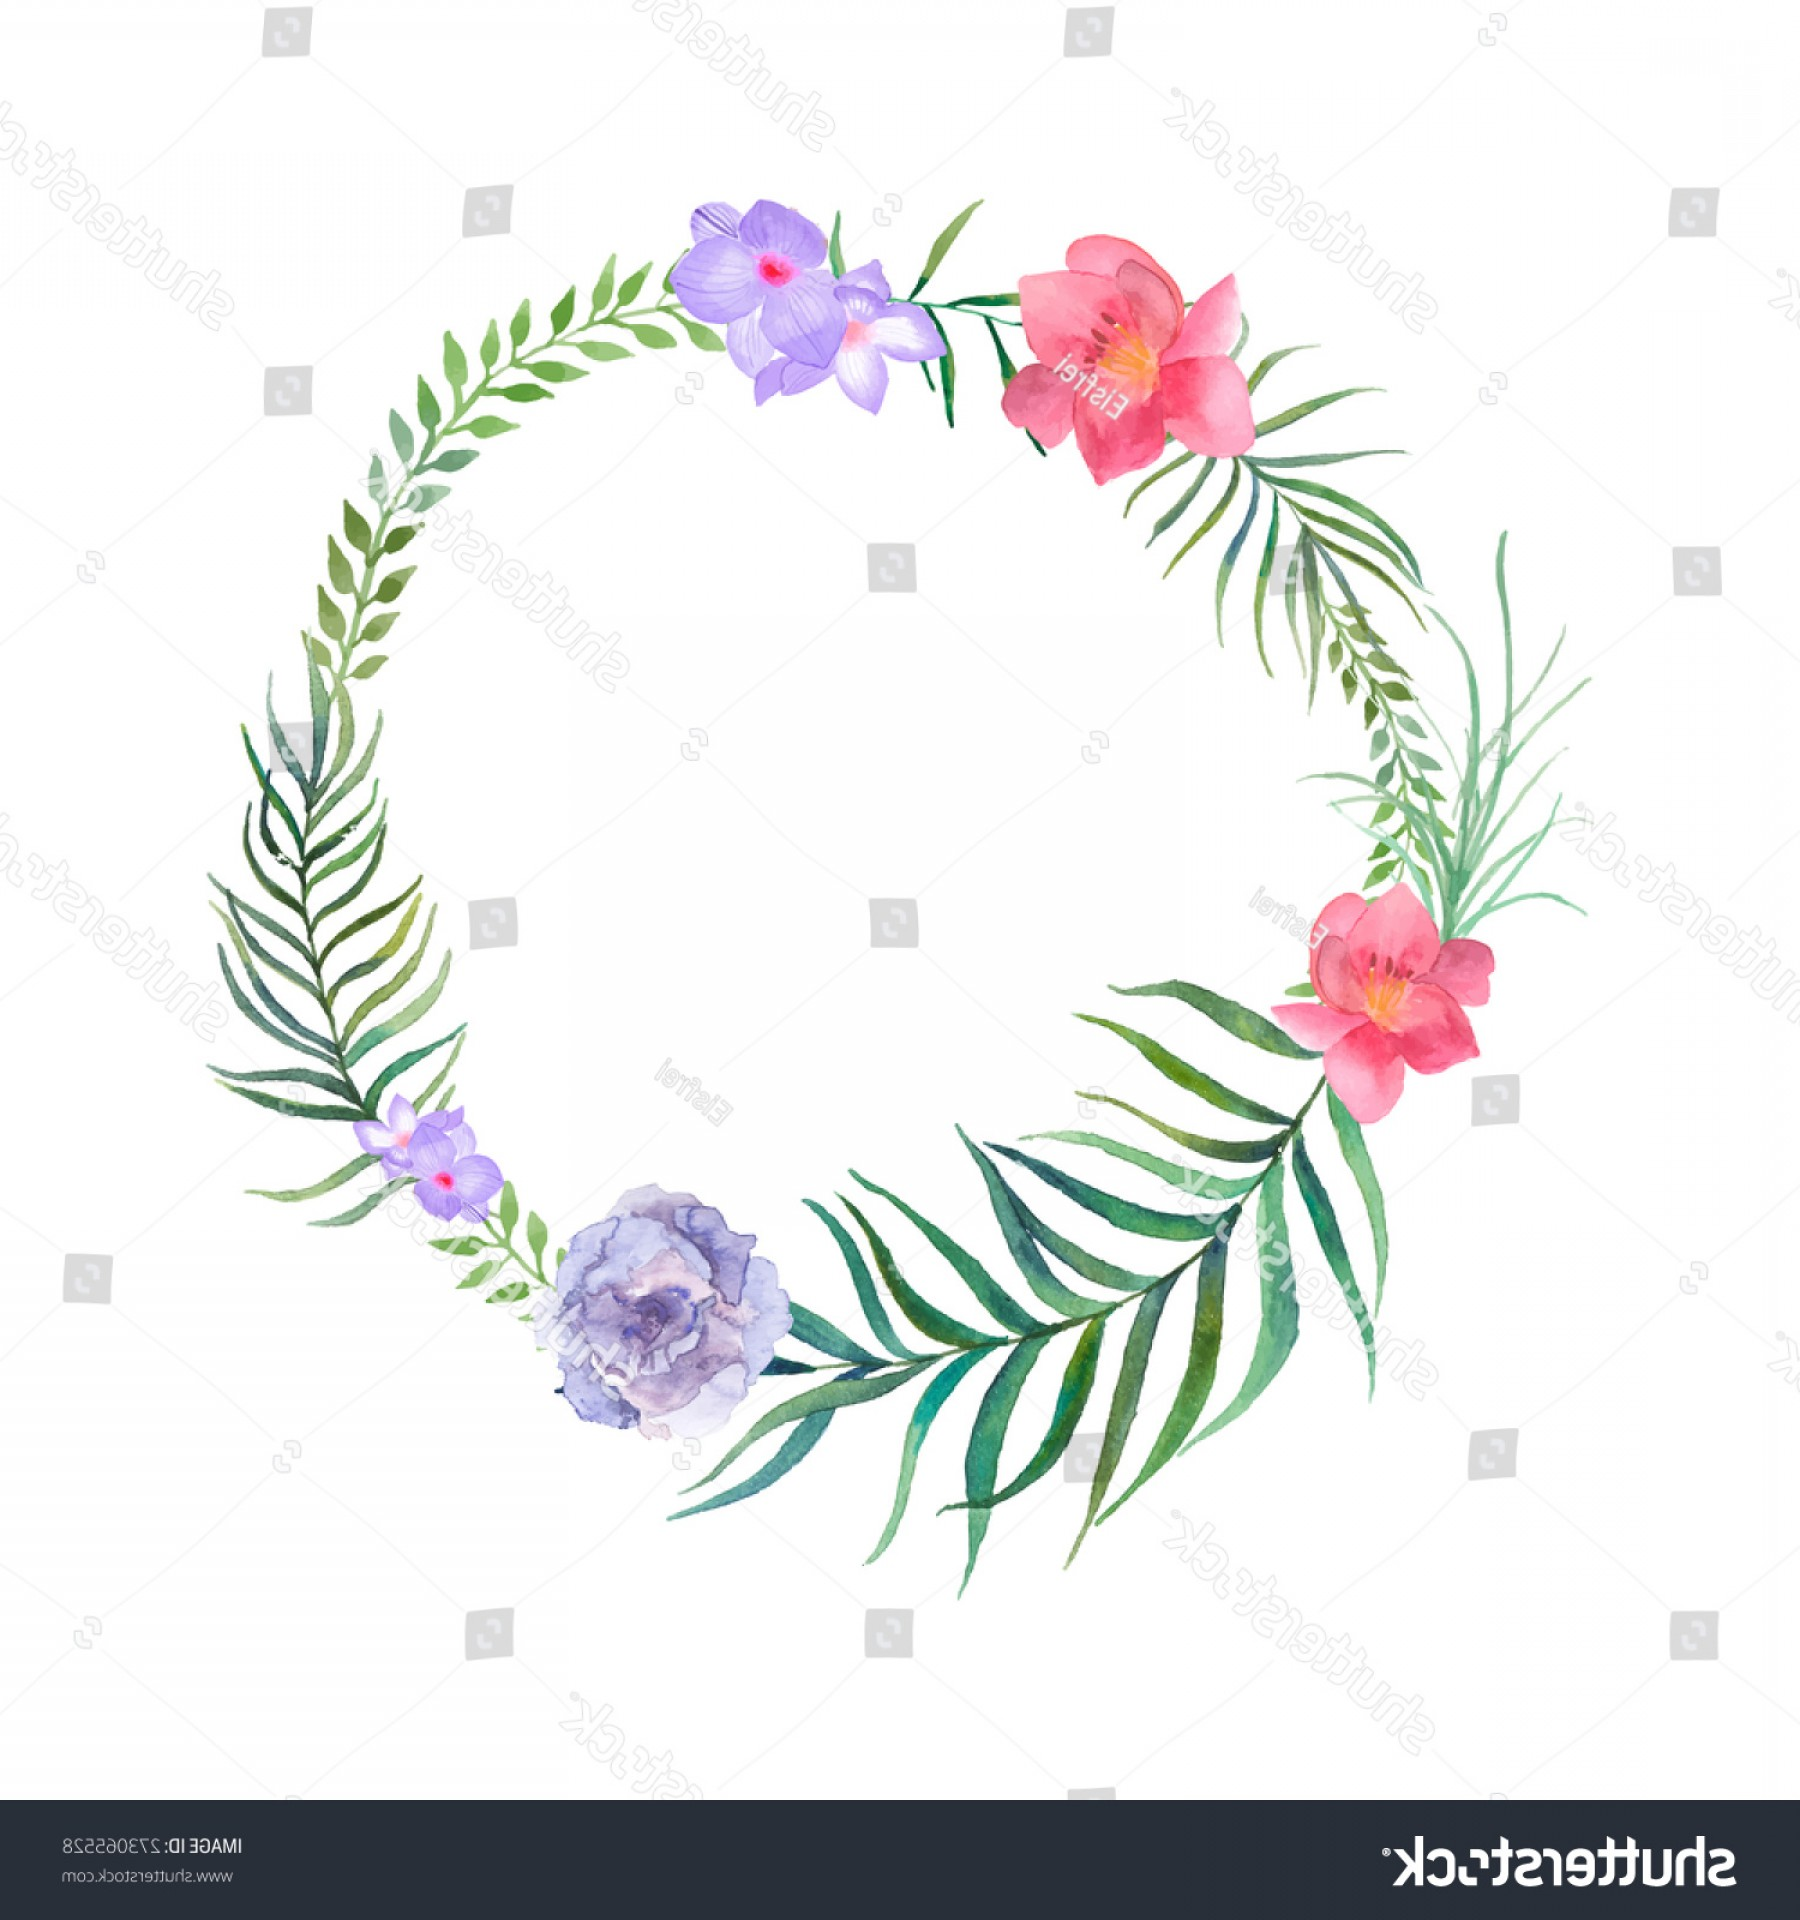 Summer Wreath Free Vector Watercolor: Watercolor Summer Plants Flowers Wreath Hand